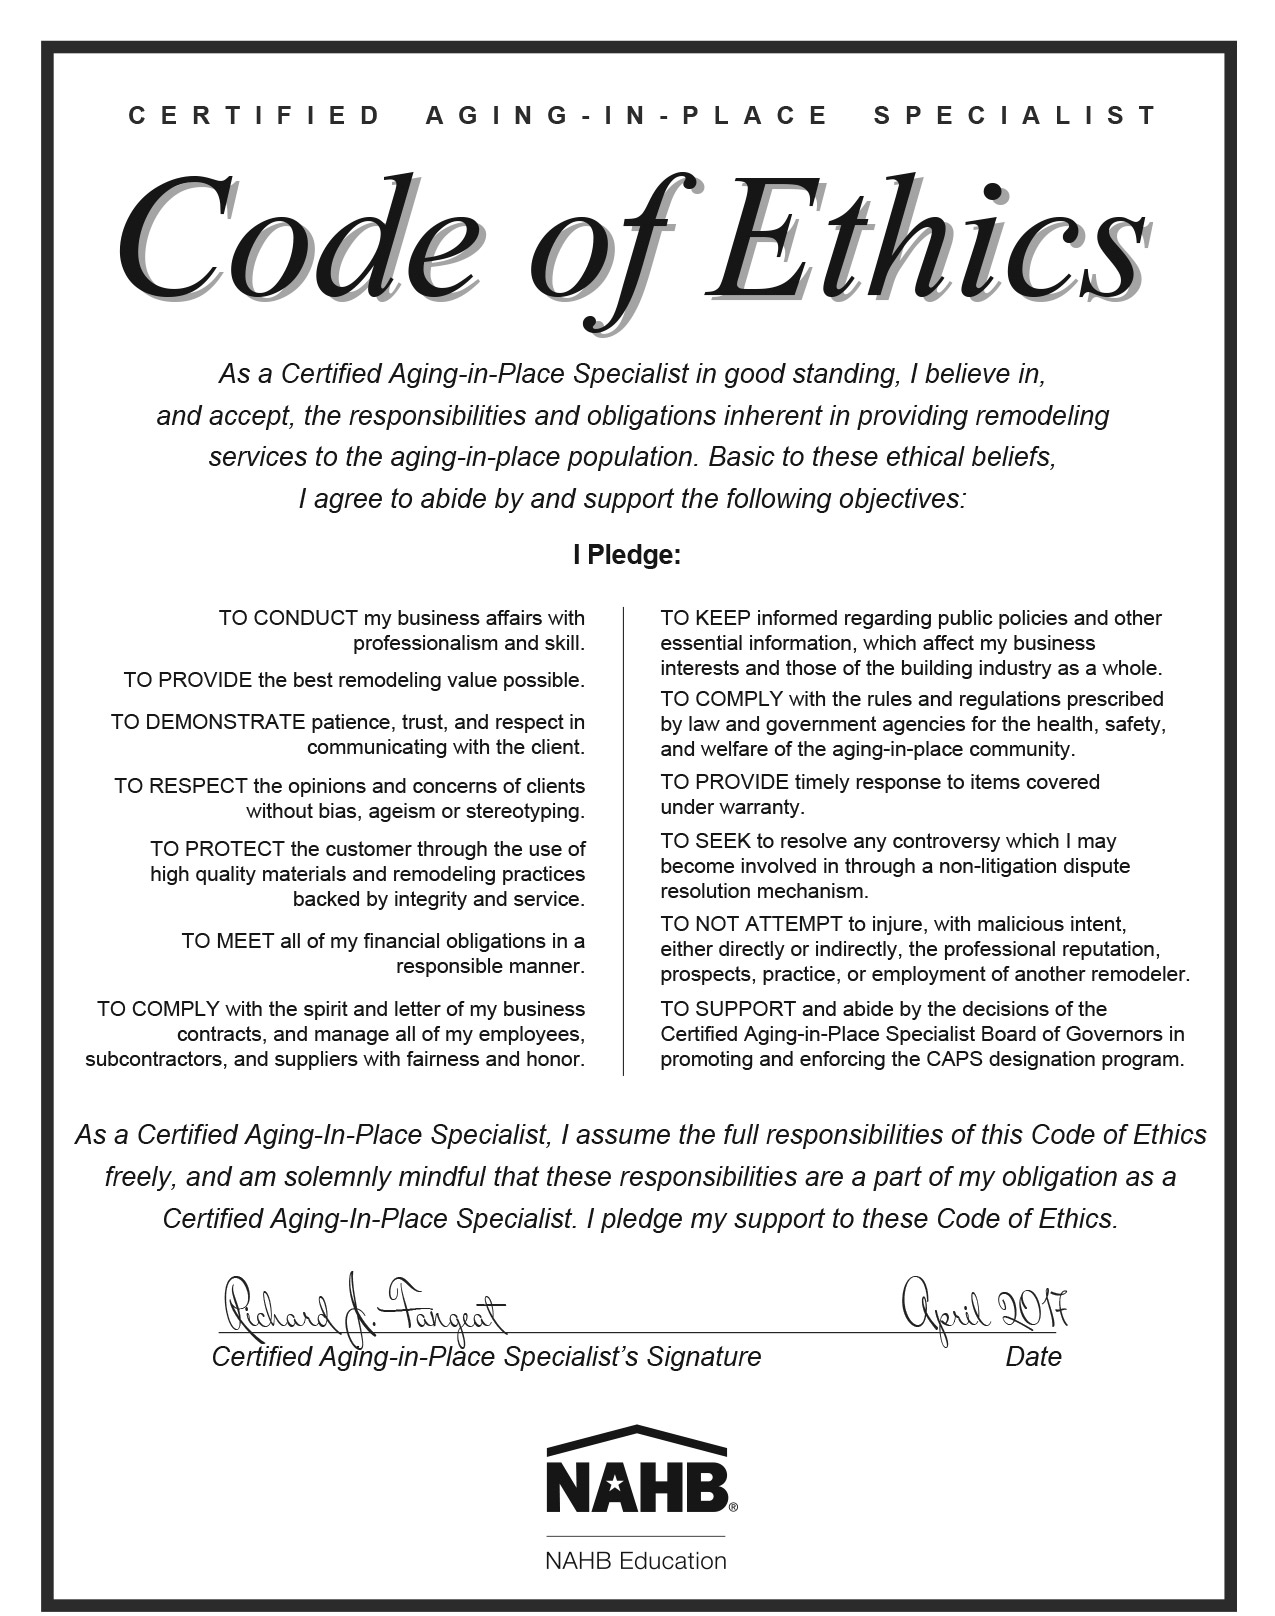 Code of Ethics pledge